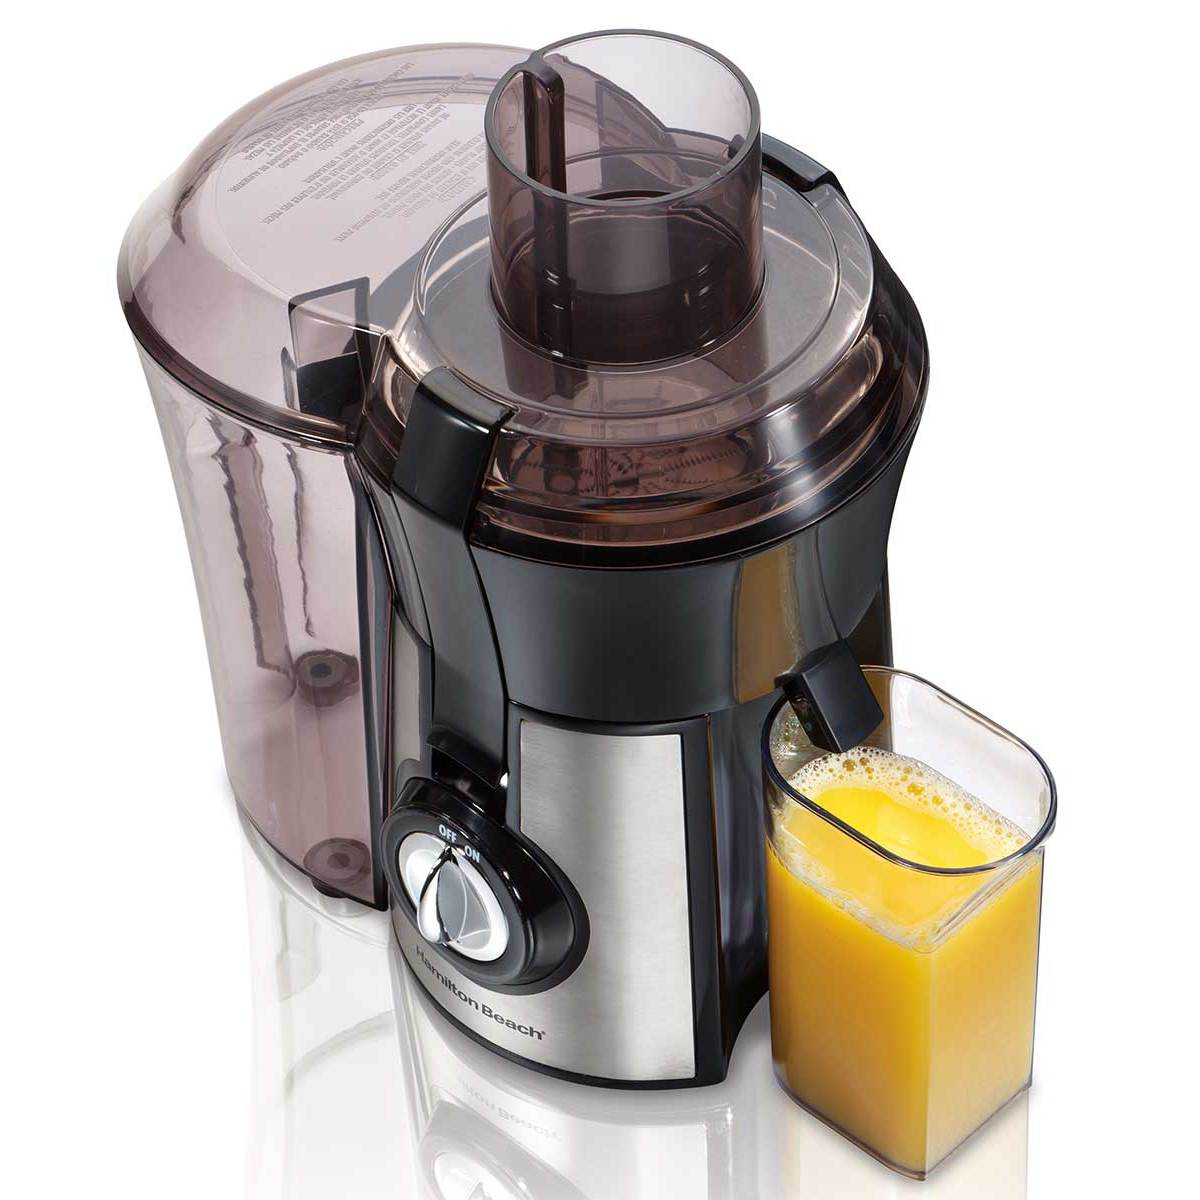 Hamilton Beach Pro Juicer Machine Review